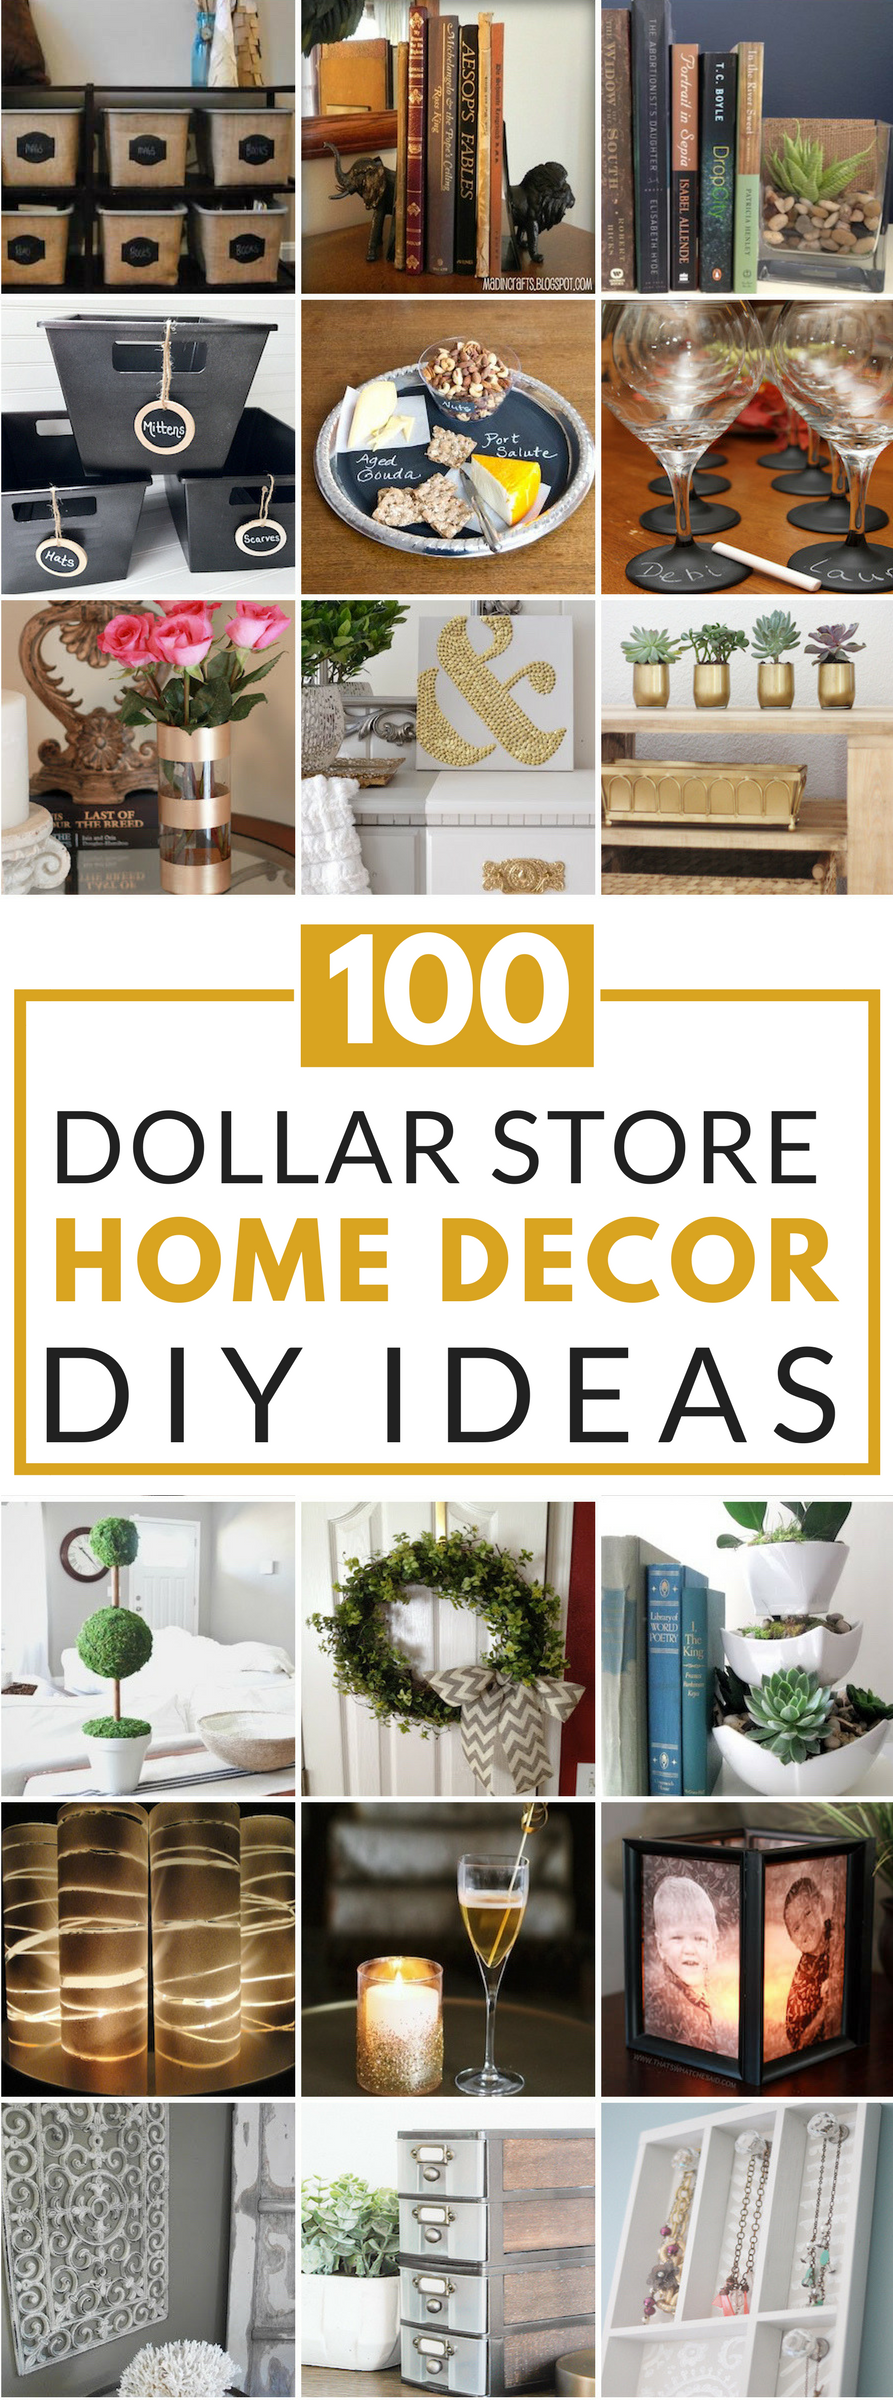 100 dollar store diy home decor ideas prudent penny pincher Decorating items shop near me